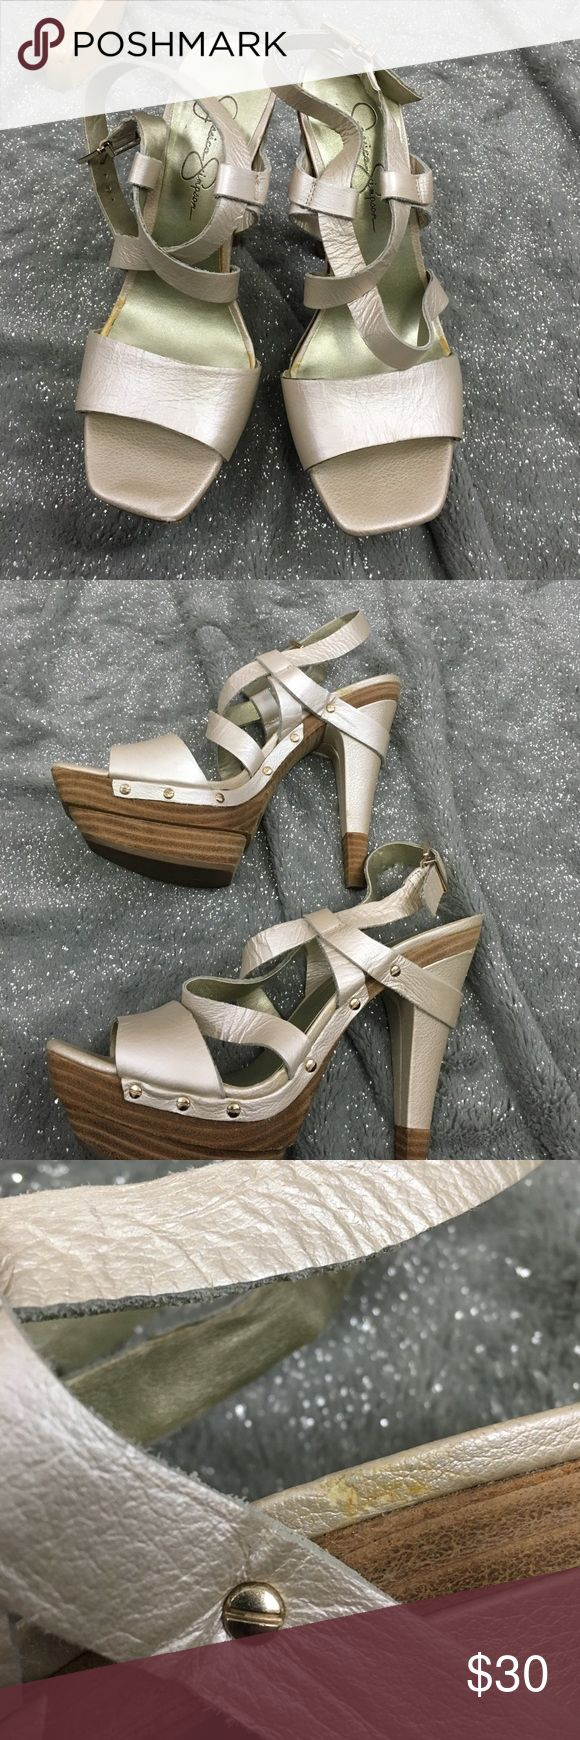 Jessica Simpson Kooza metallic heels In very good condition, a few flaws as pictured (all would be hidden when worn) Jessica Simpson Shoes Heels